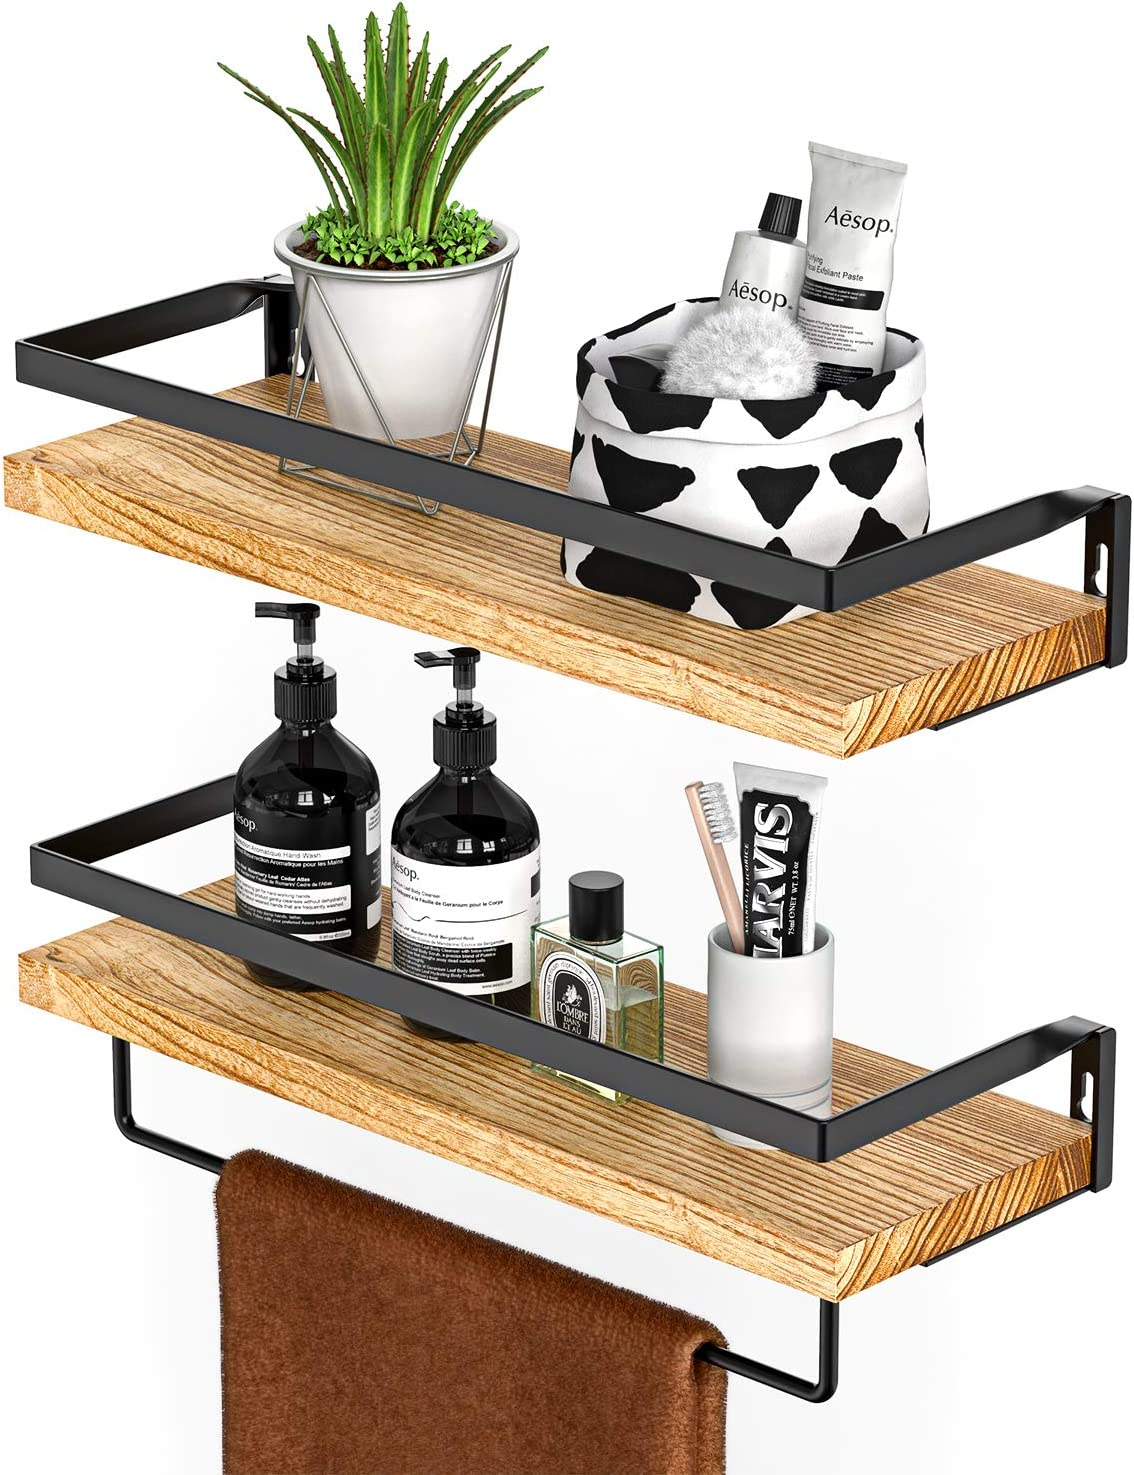 Amada Rustic Floating Shelves Wall Mounted, Solid Paulownia Wood Set of 2 for Kitchen, Bathroom, and Bedroom, Decorative Storage Shelf with Removable Towel Holder, Strong Black Metal Frame: Furniture & Decor